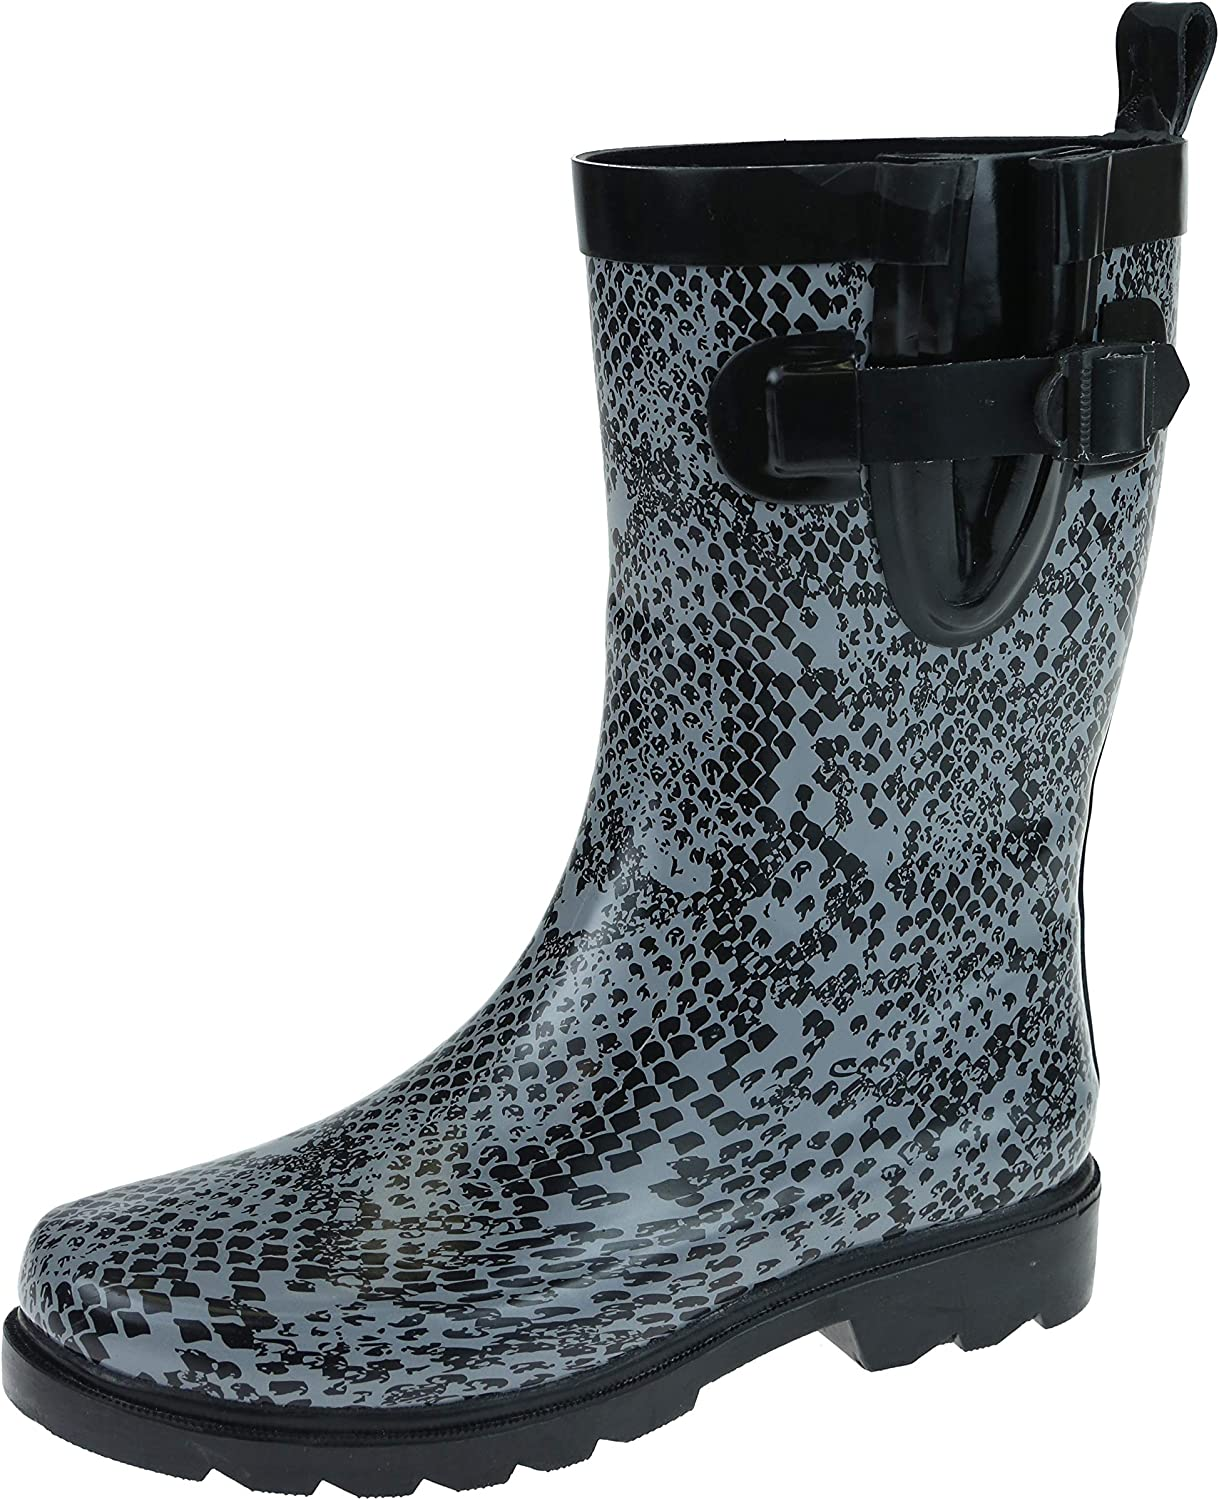 Capelli New York Shiny Python Printed with Buckle, Gusset and Back Pull Loop Ladies Mid-Calf Sporty Rain Boot Black Combo Size